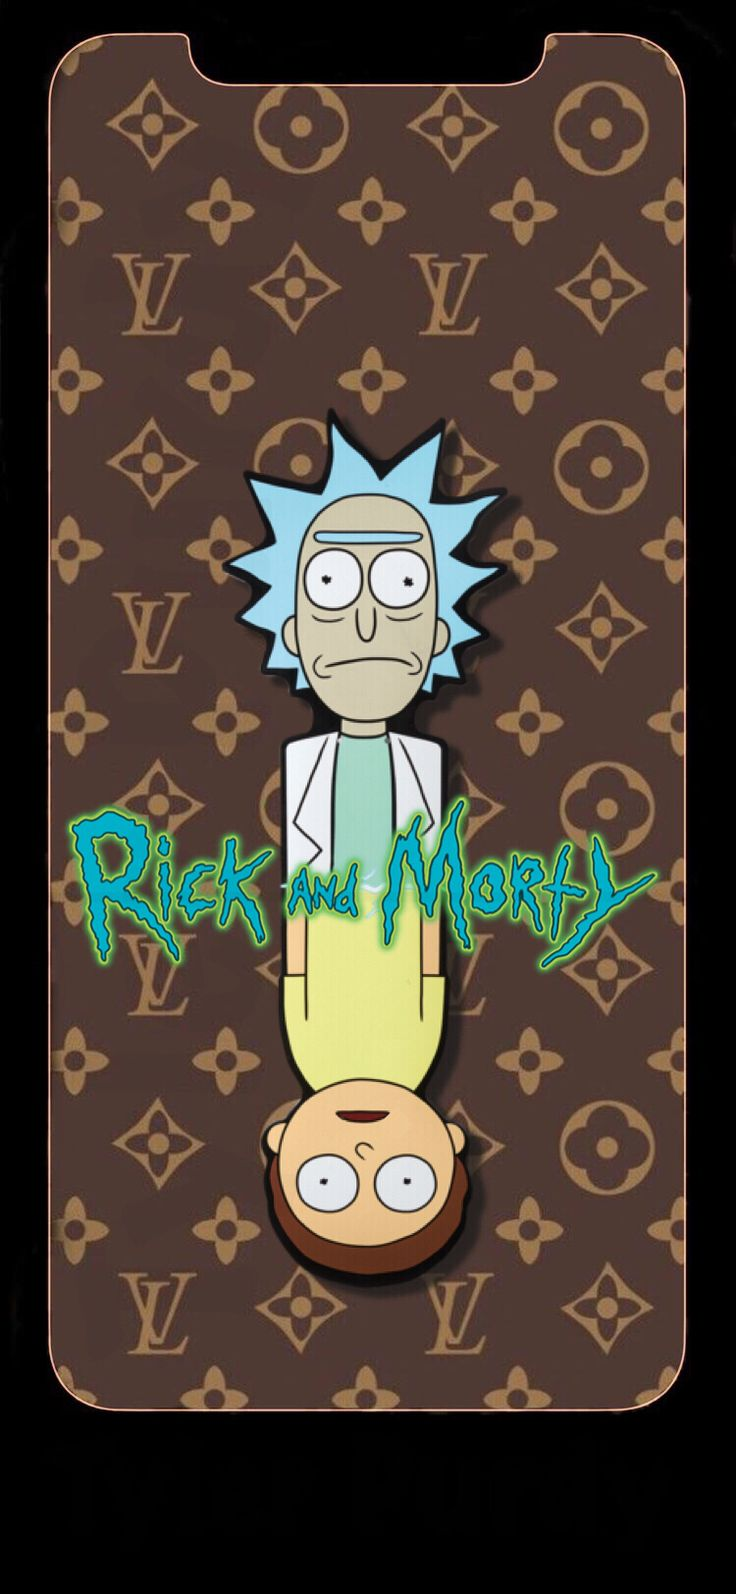 Rick And Morty Wallpaper Iphone Rick And Morty Louis